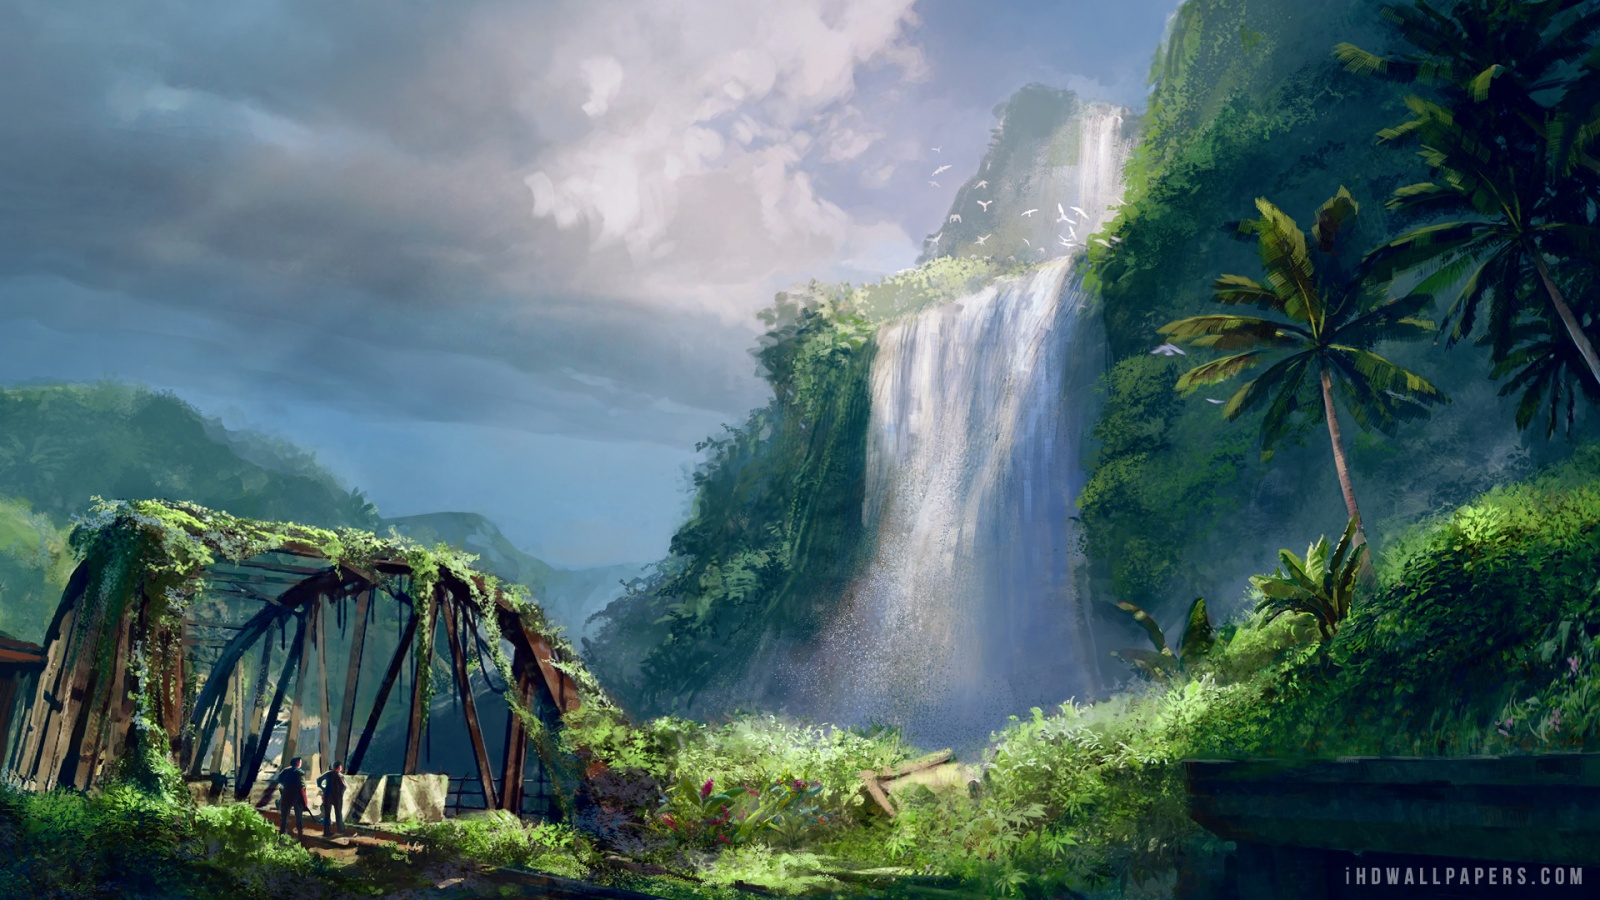 Far Cry 3 Waterfalls HD Wallpaper   iHD Wallpapers 1600x900